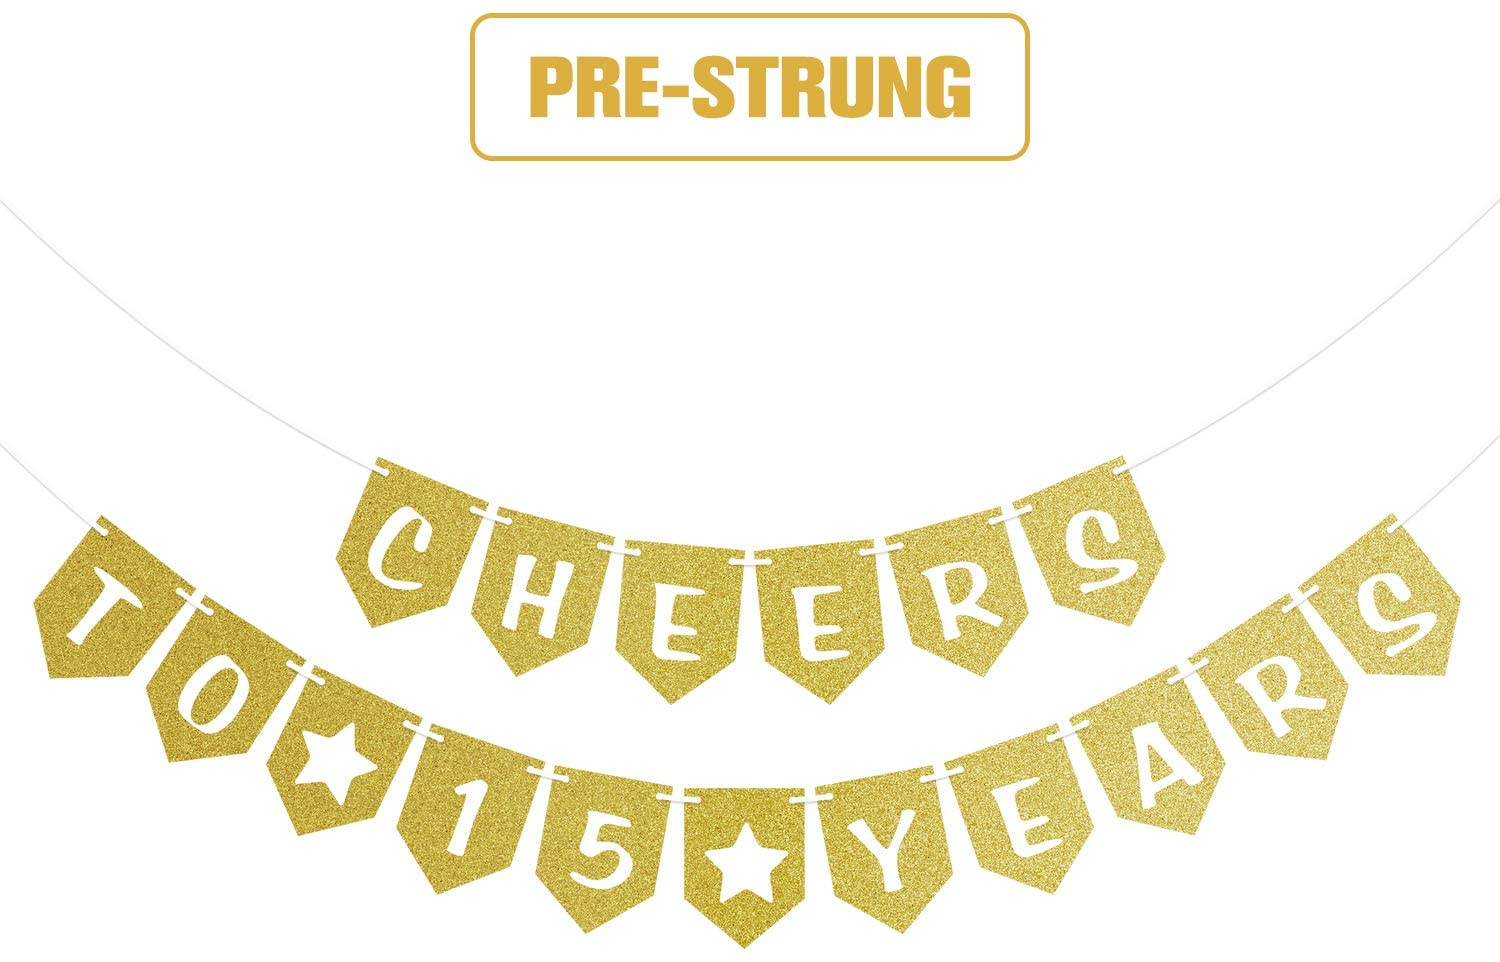 Cheers to 15 Years Pre-strung Gold Glittery Banner 15th Birthday Wedding Anniversary Party Decorations for Boy Girl Men Women